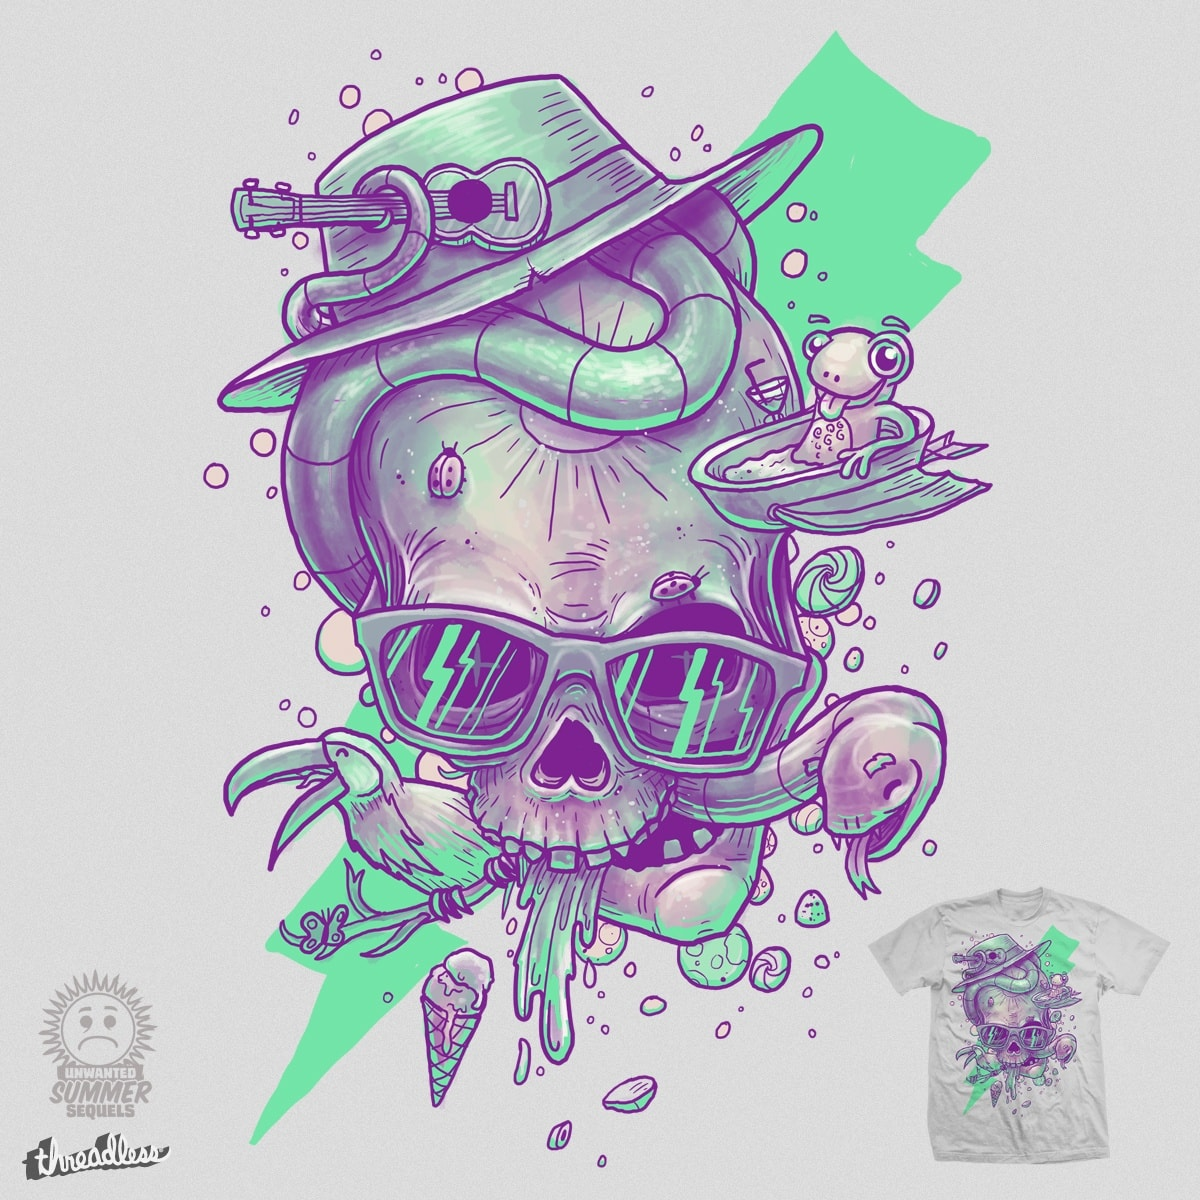 Bleak Summer Skullin' by Demented on Threadless